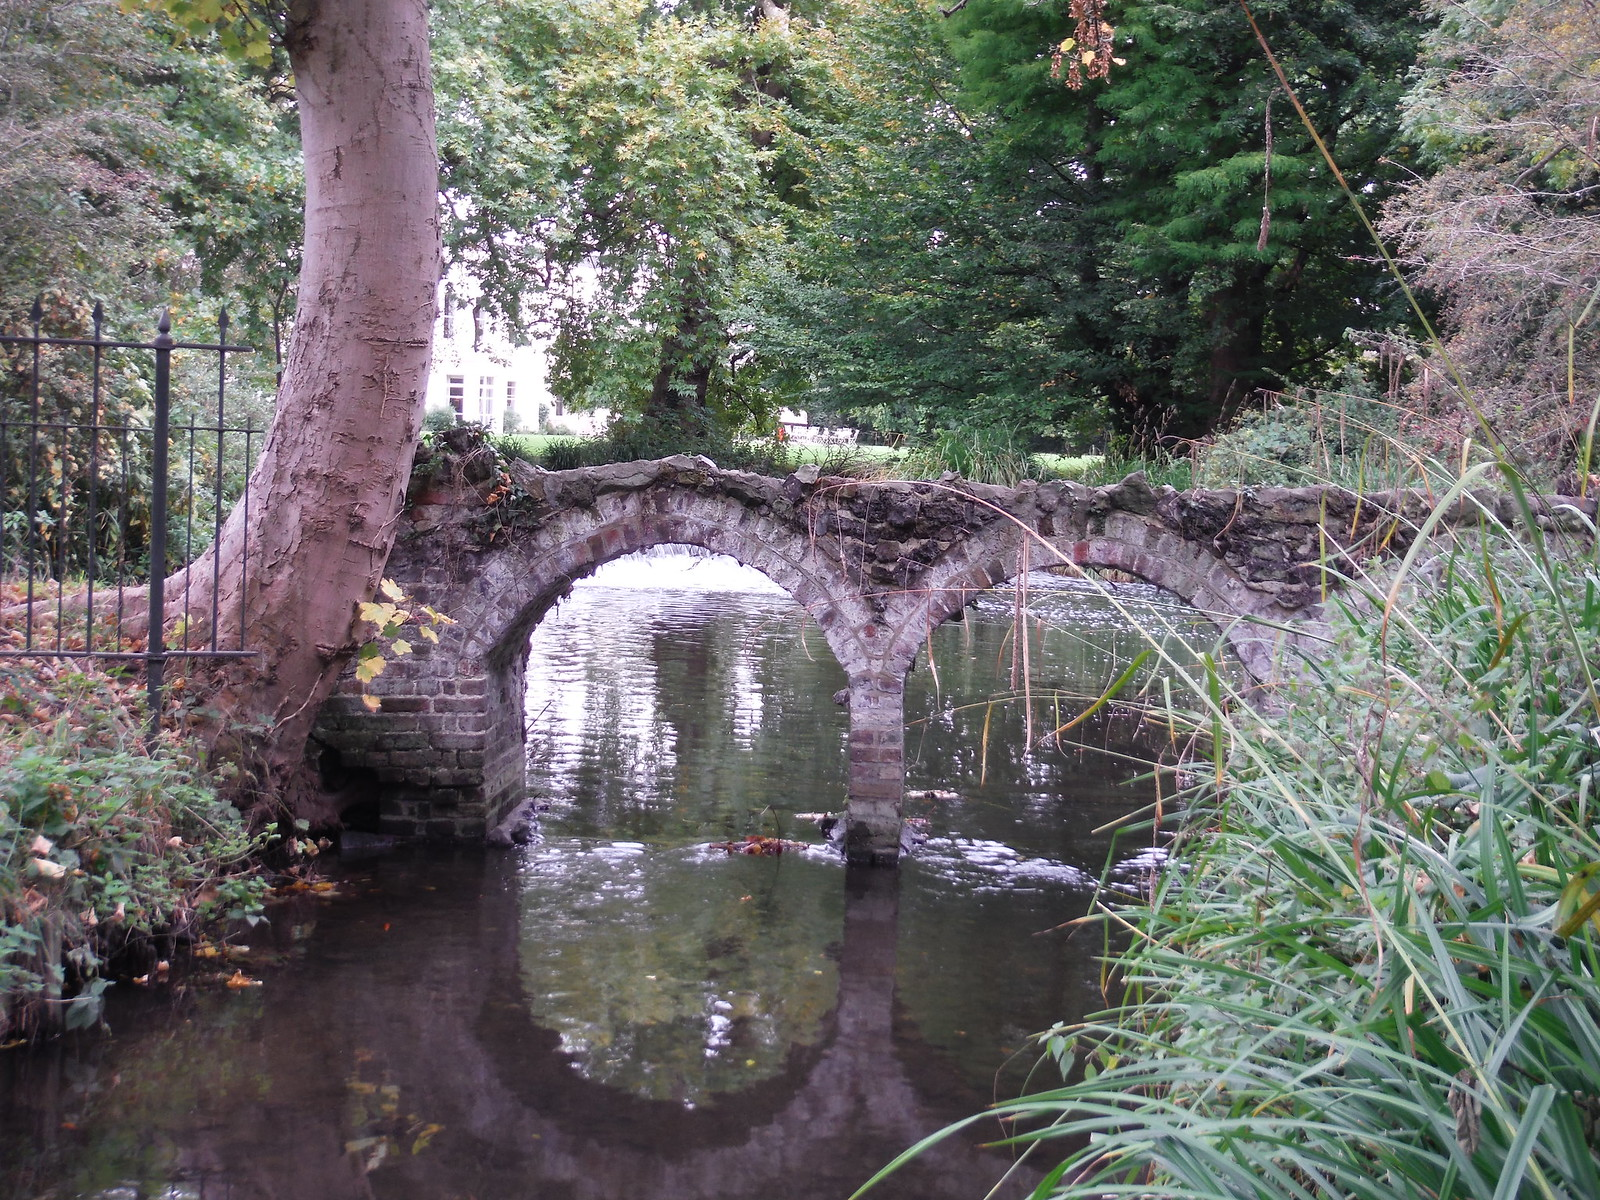 Romatically Ruined Arches (Outflow of Moat of Morden Hall) SWC Walk Short 13 - Morden Hall Park and Merton Abbey Mills